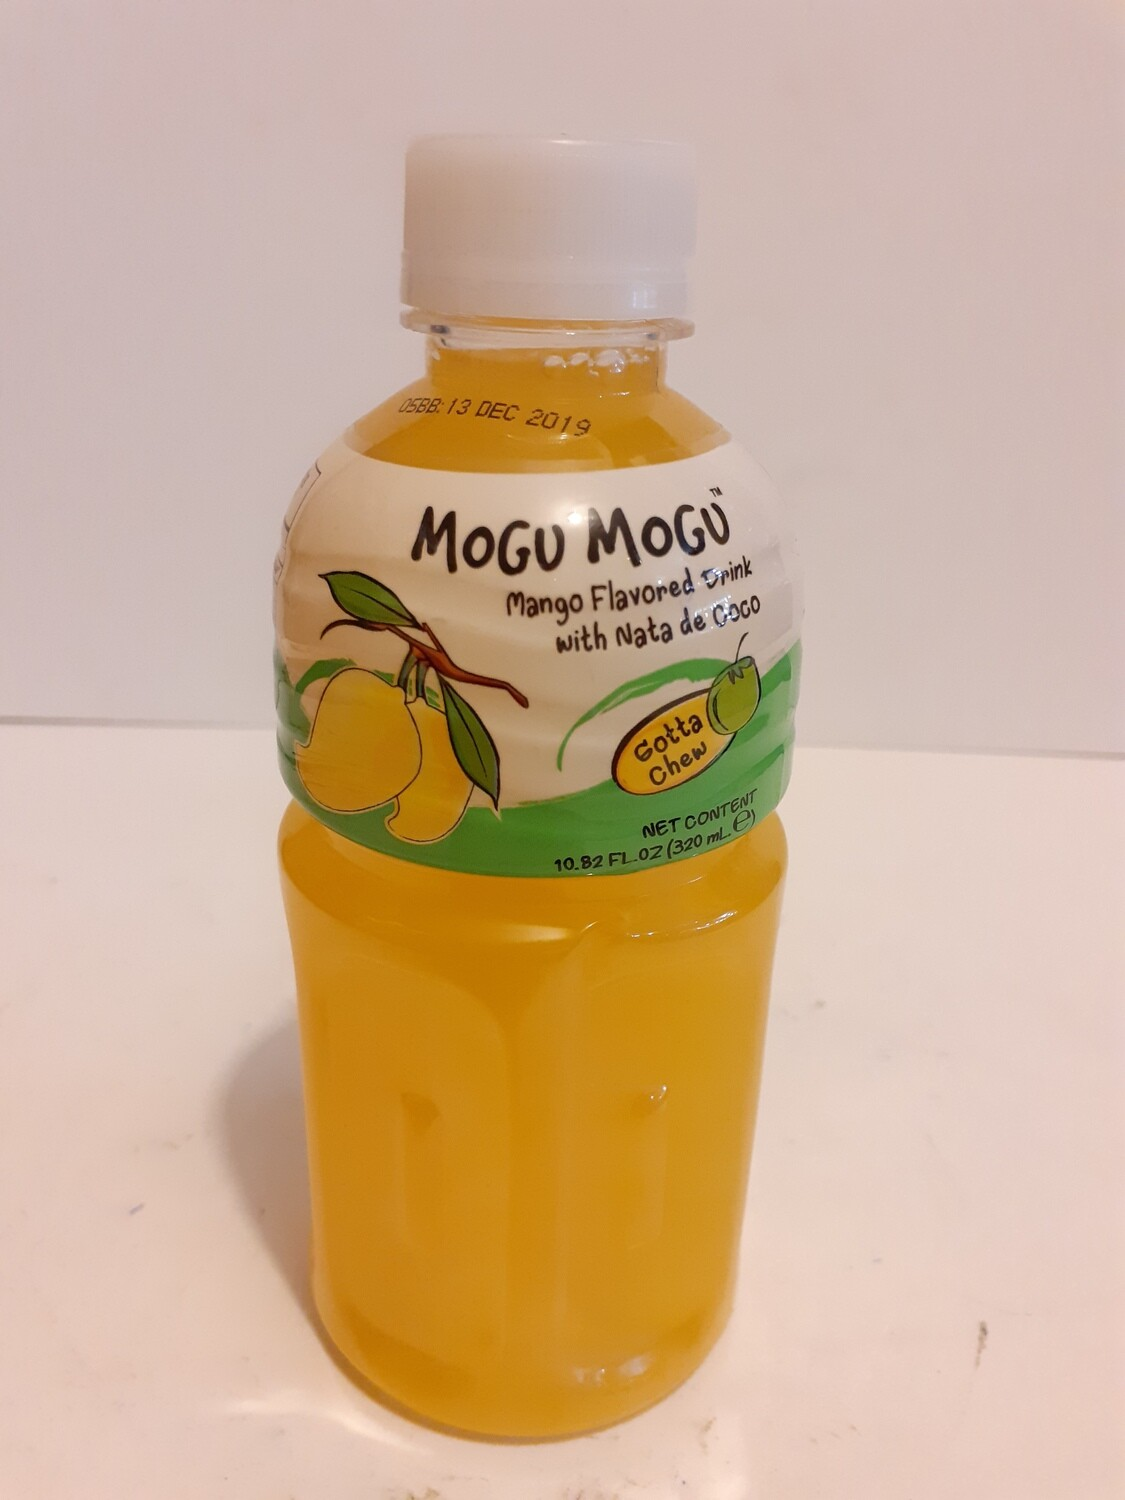 Mango flavored Drink with Nata Coco 320 ml